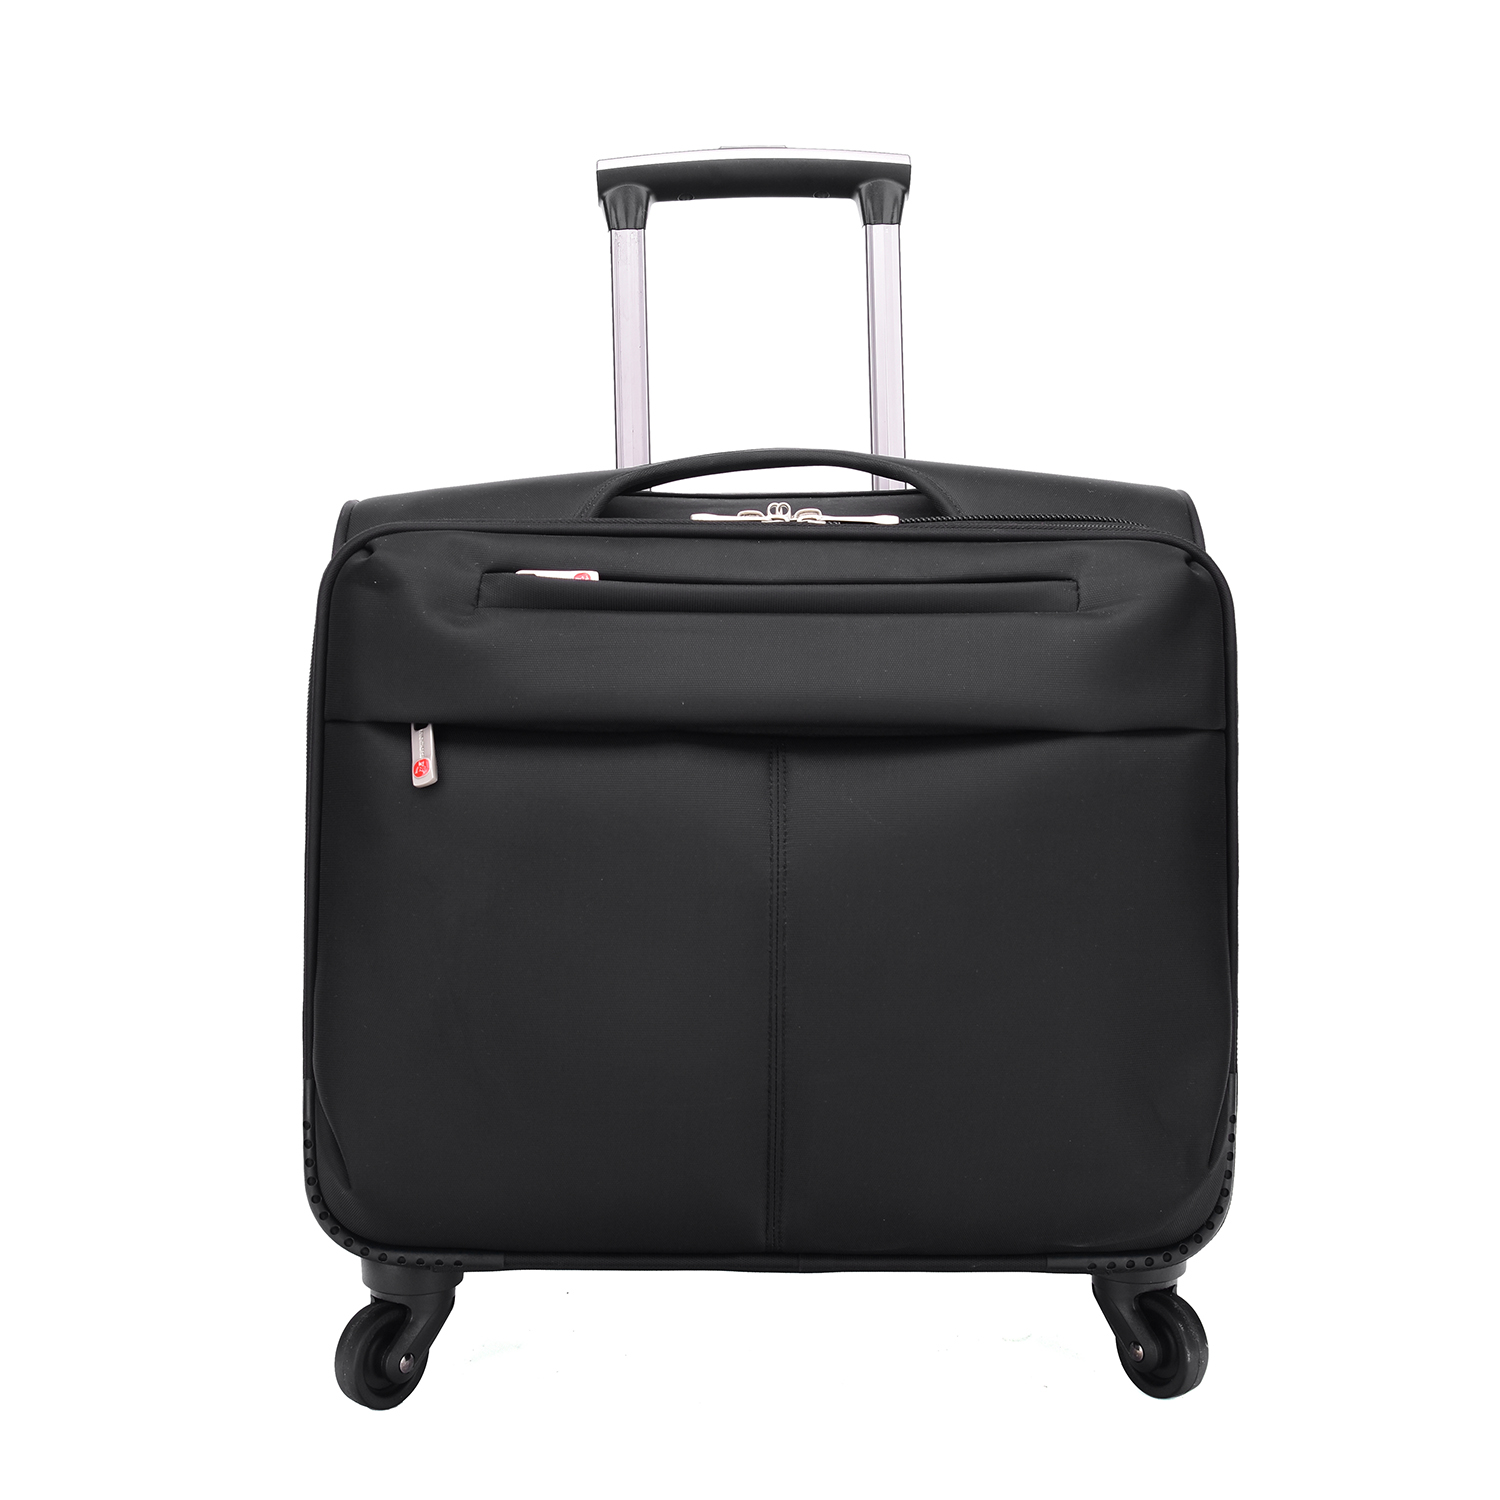 1715-07 man trolley bag for business